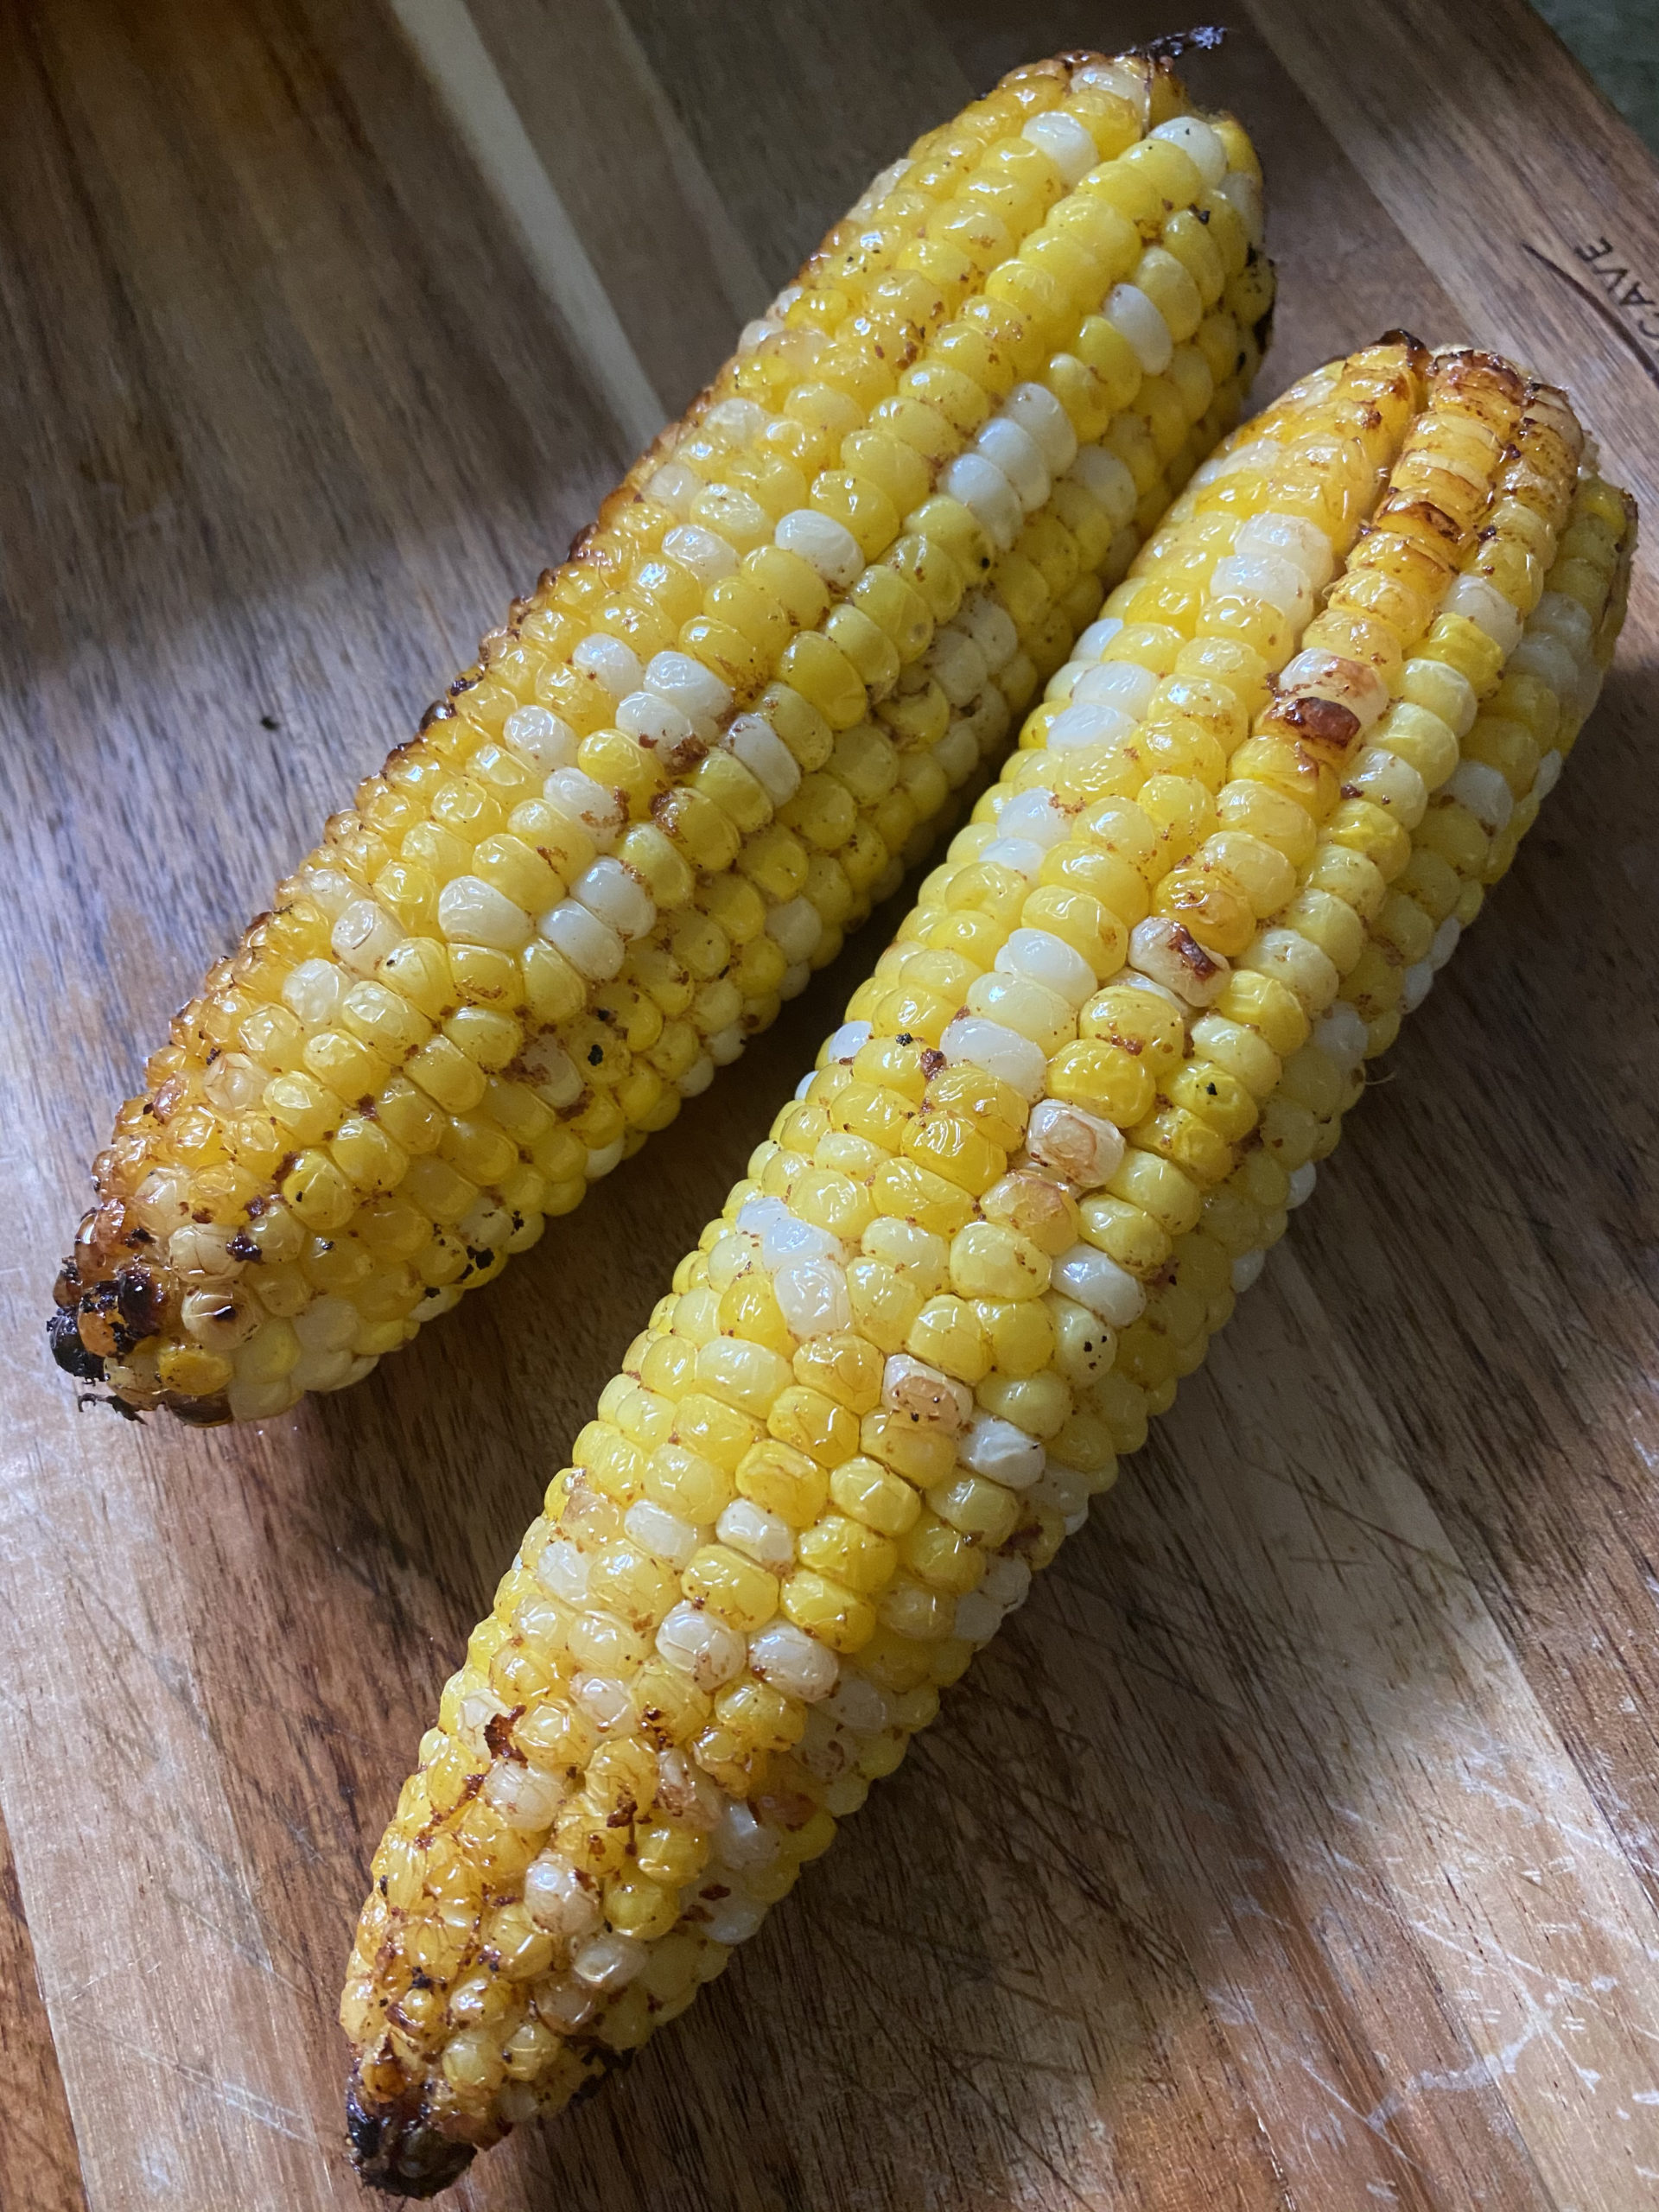 Grilled chili corn. STEVEN STOLMAN